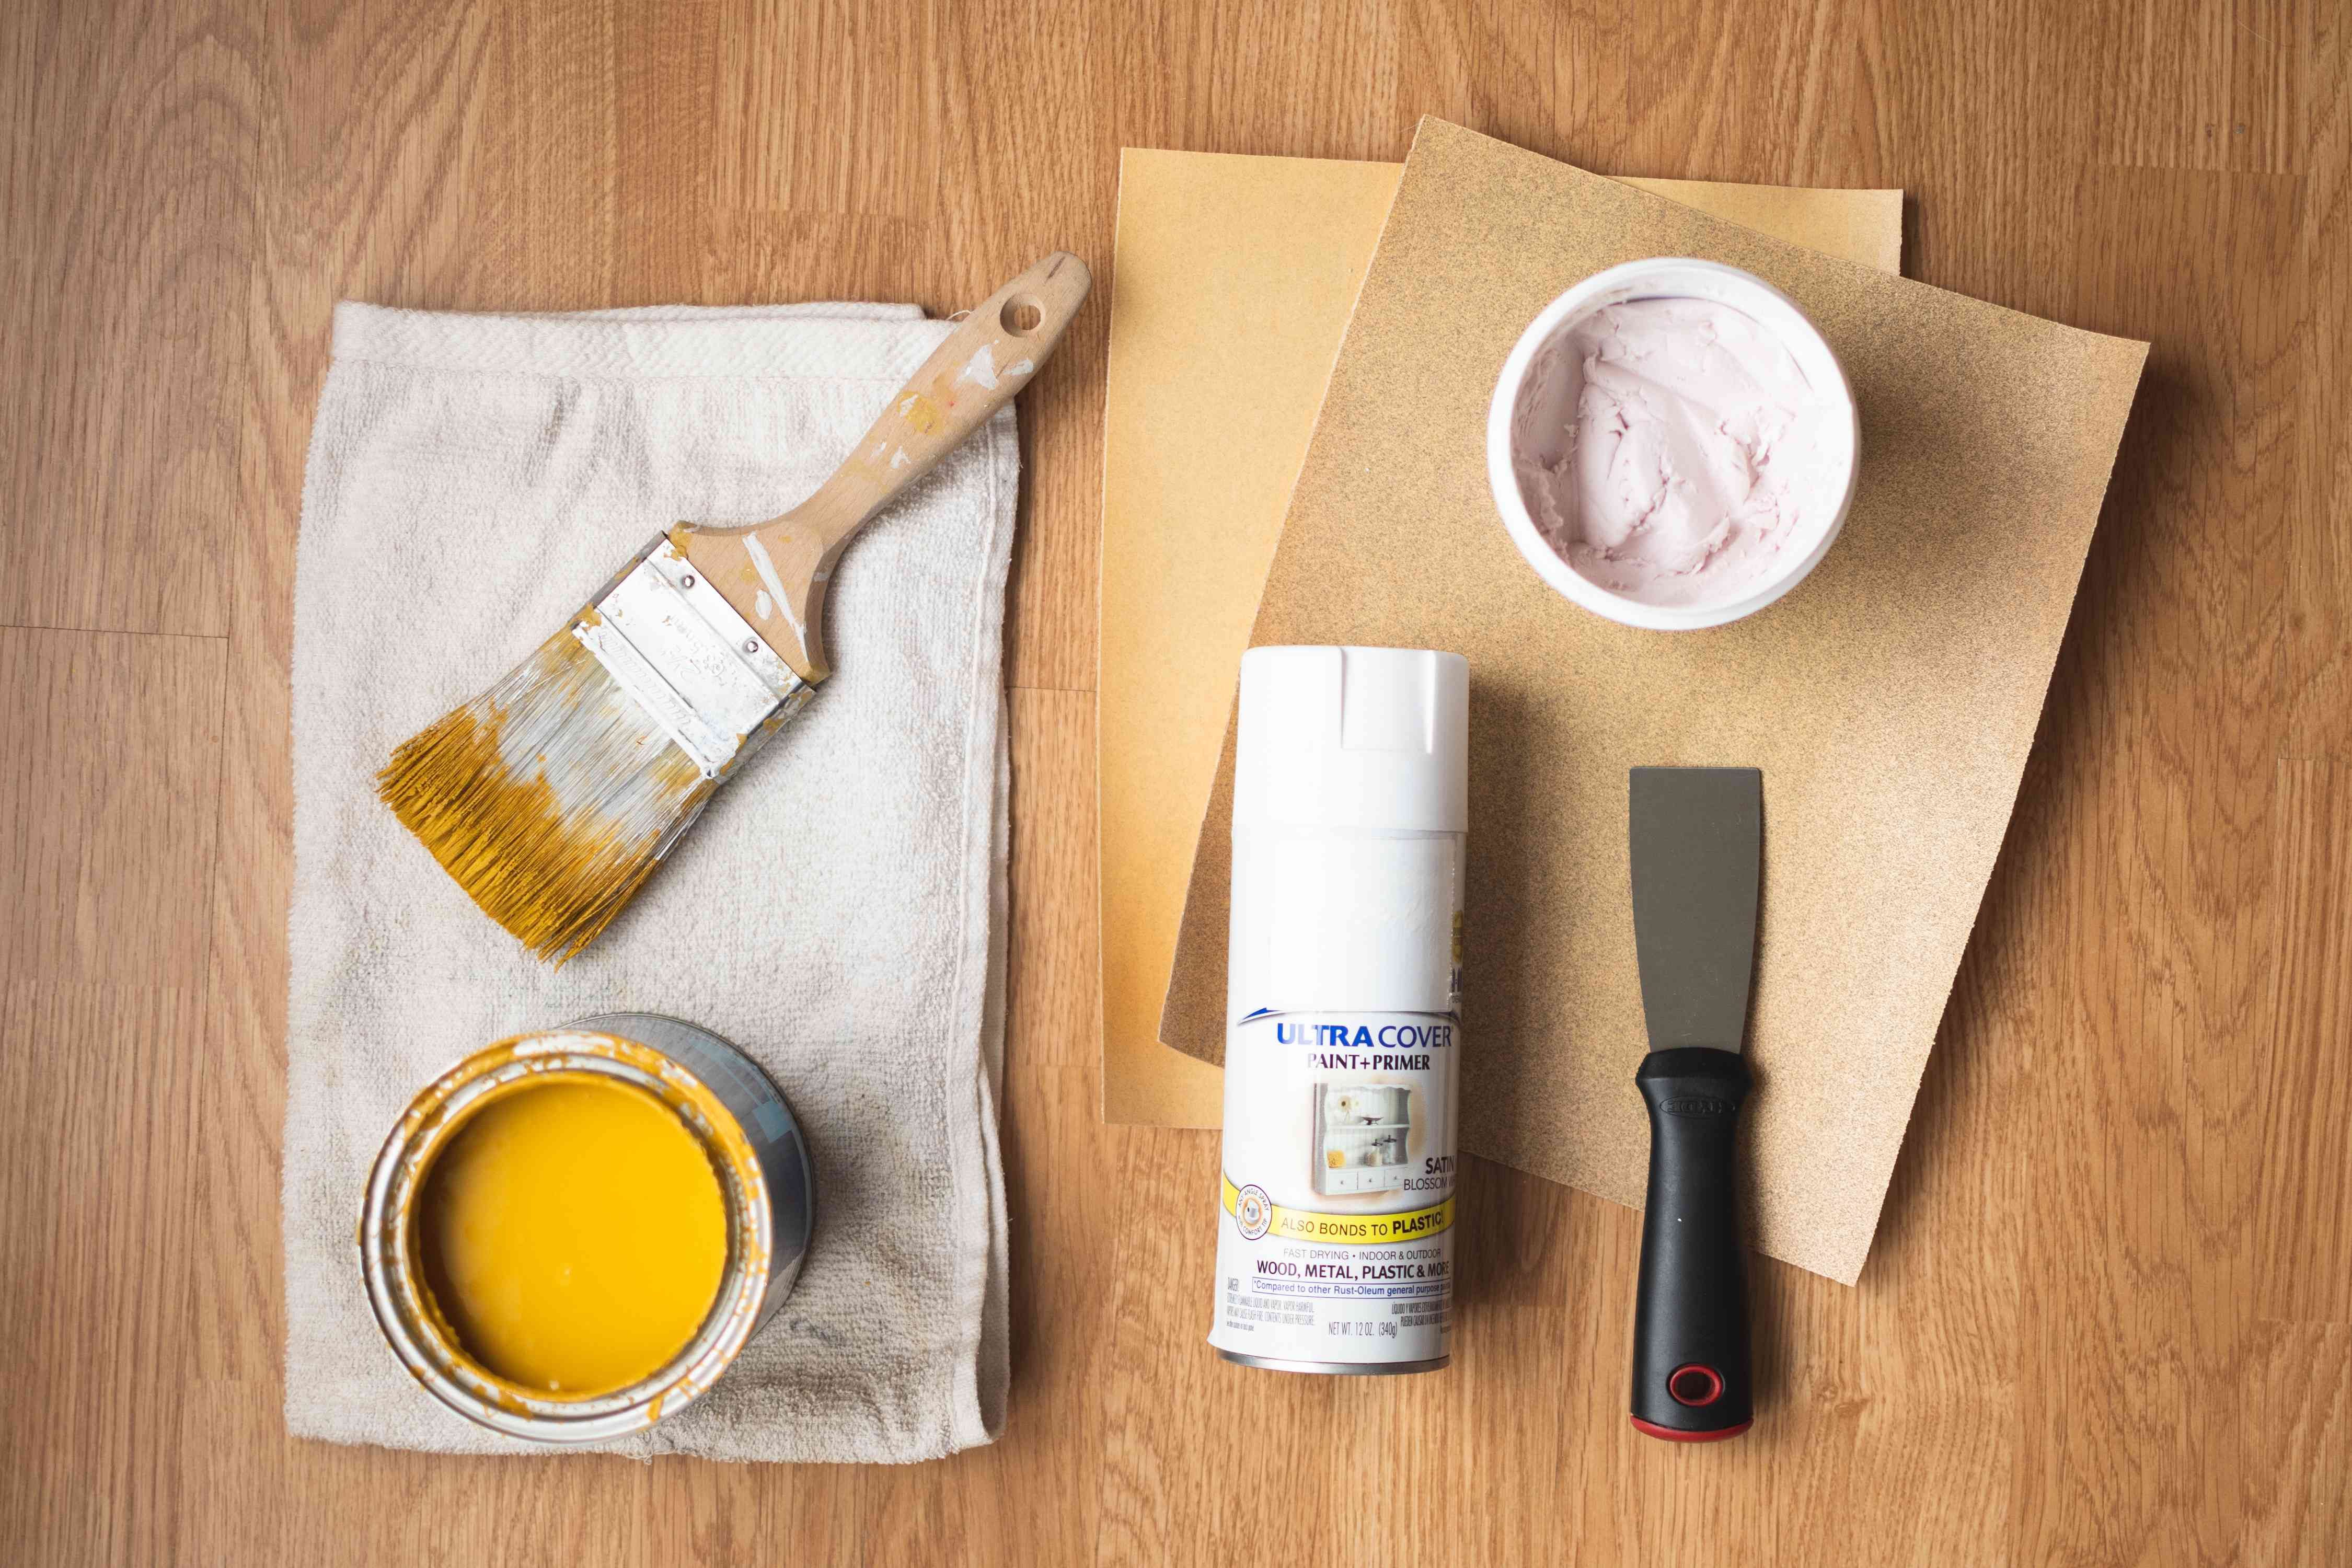 Materials and tools to refurbish wooden chairs